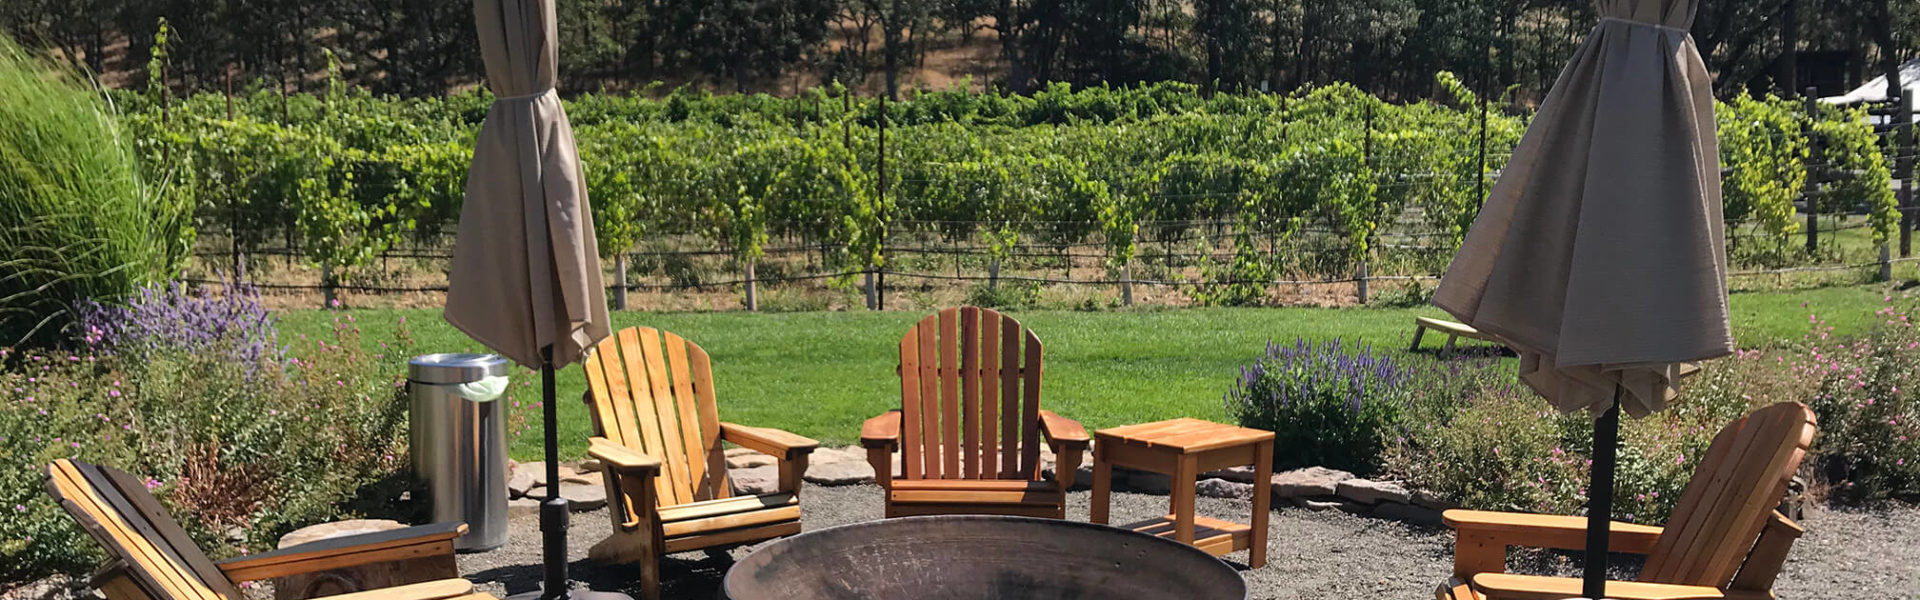 Syncline offers a comfortable setting for Columbia Gorge wine tasting